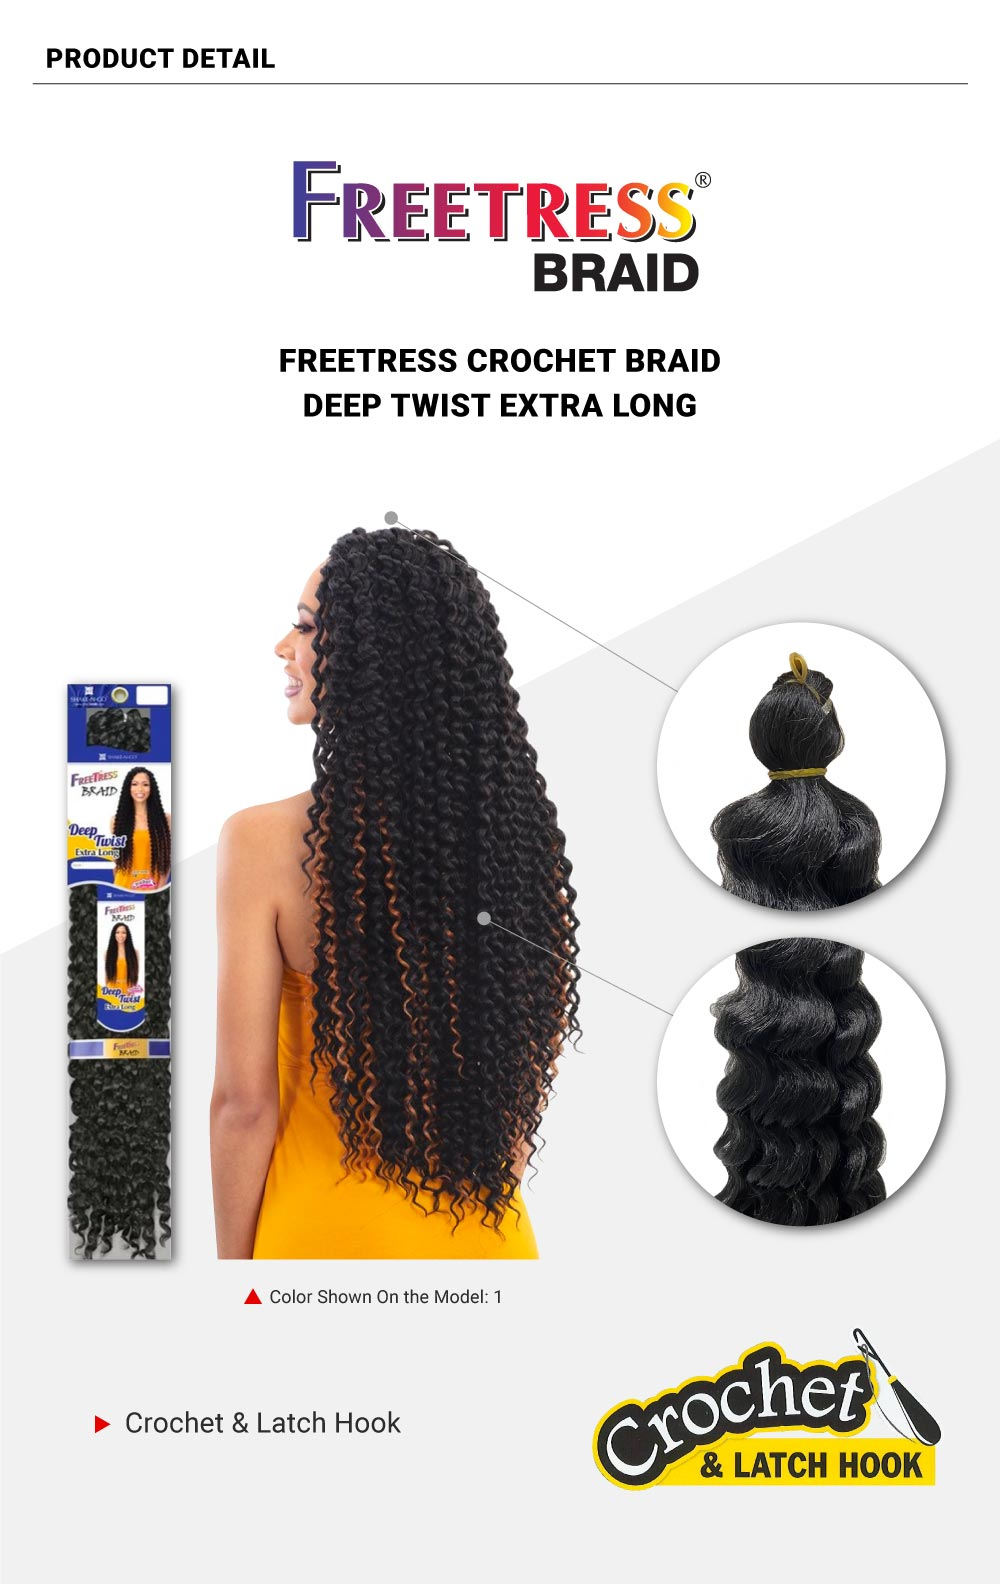 Freetress-Crochet-Braids-Deep-Twist-Extra-long